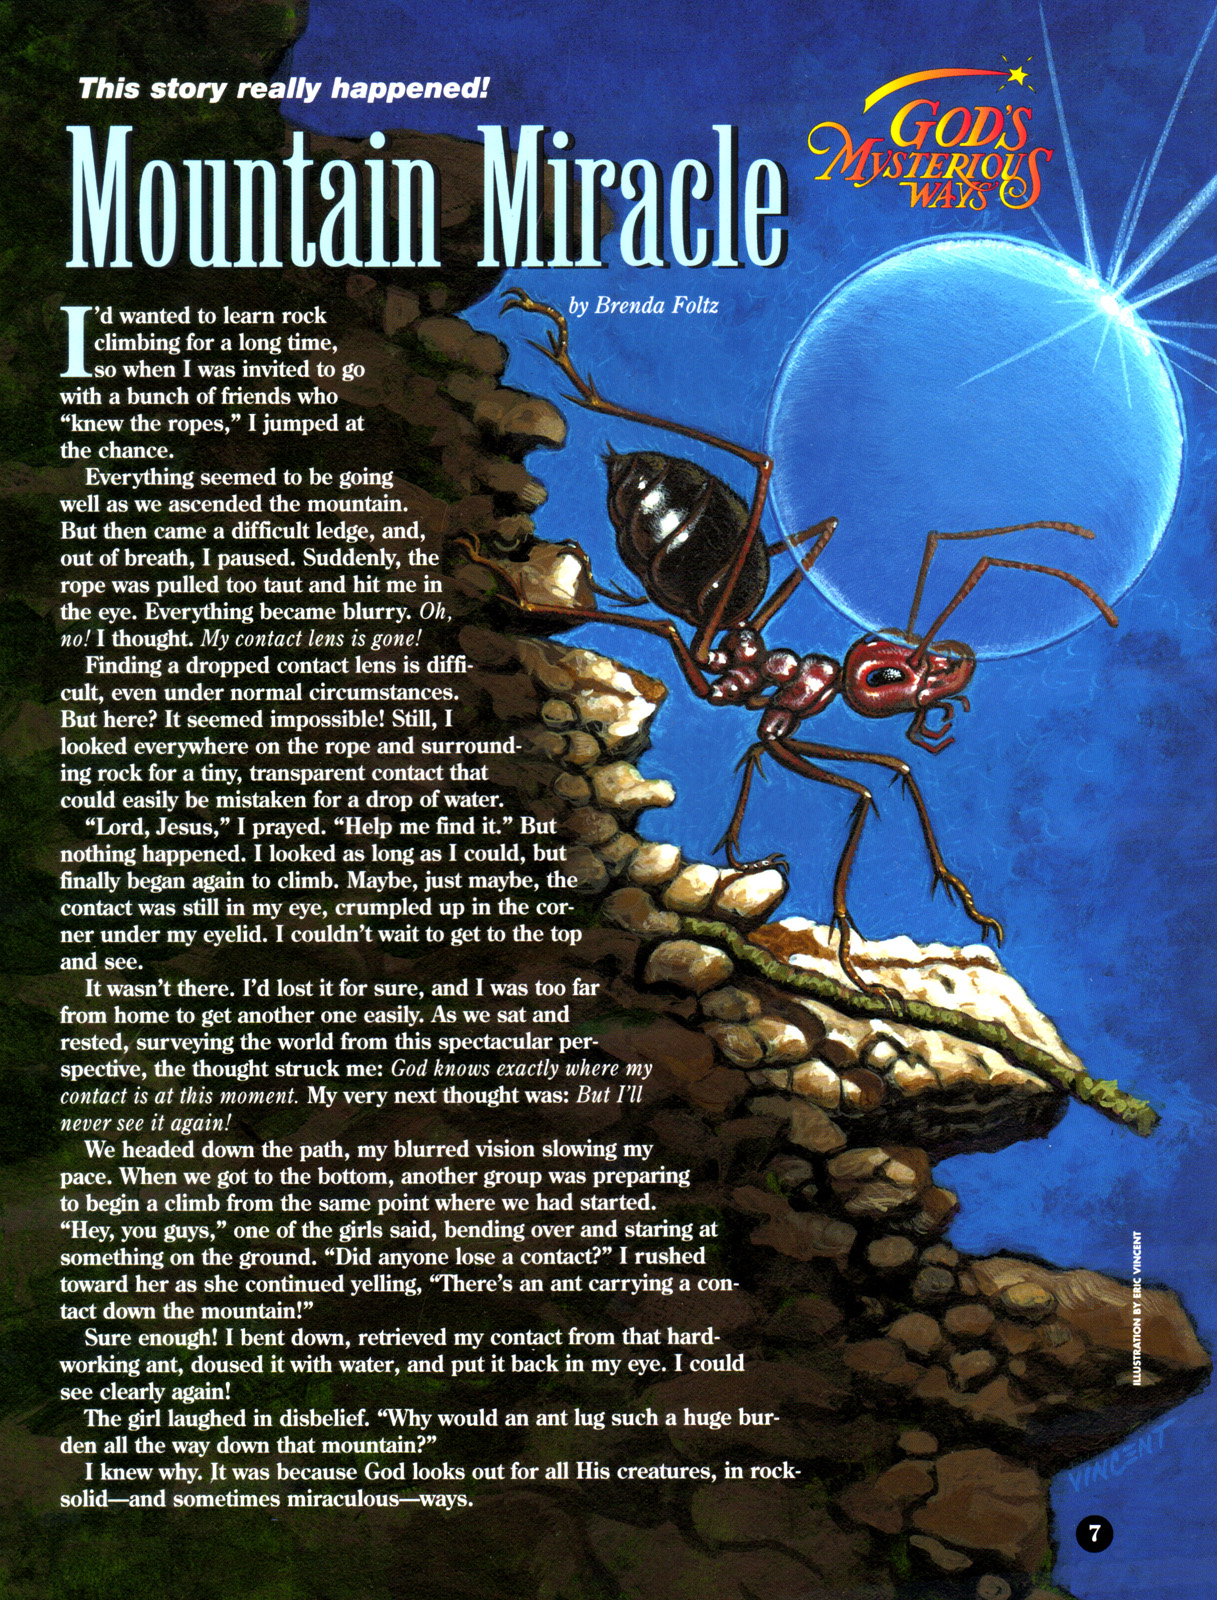 Mountain Miracle